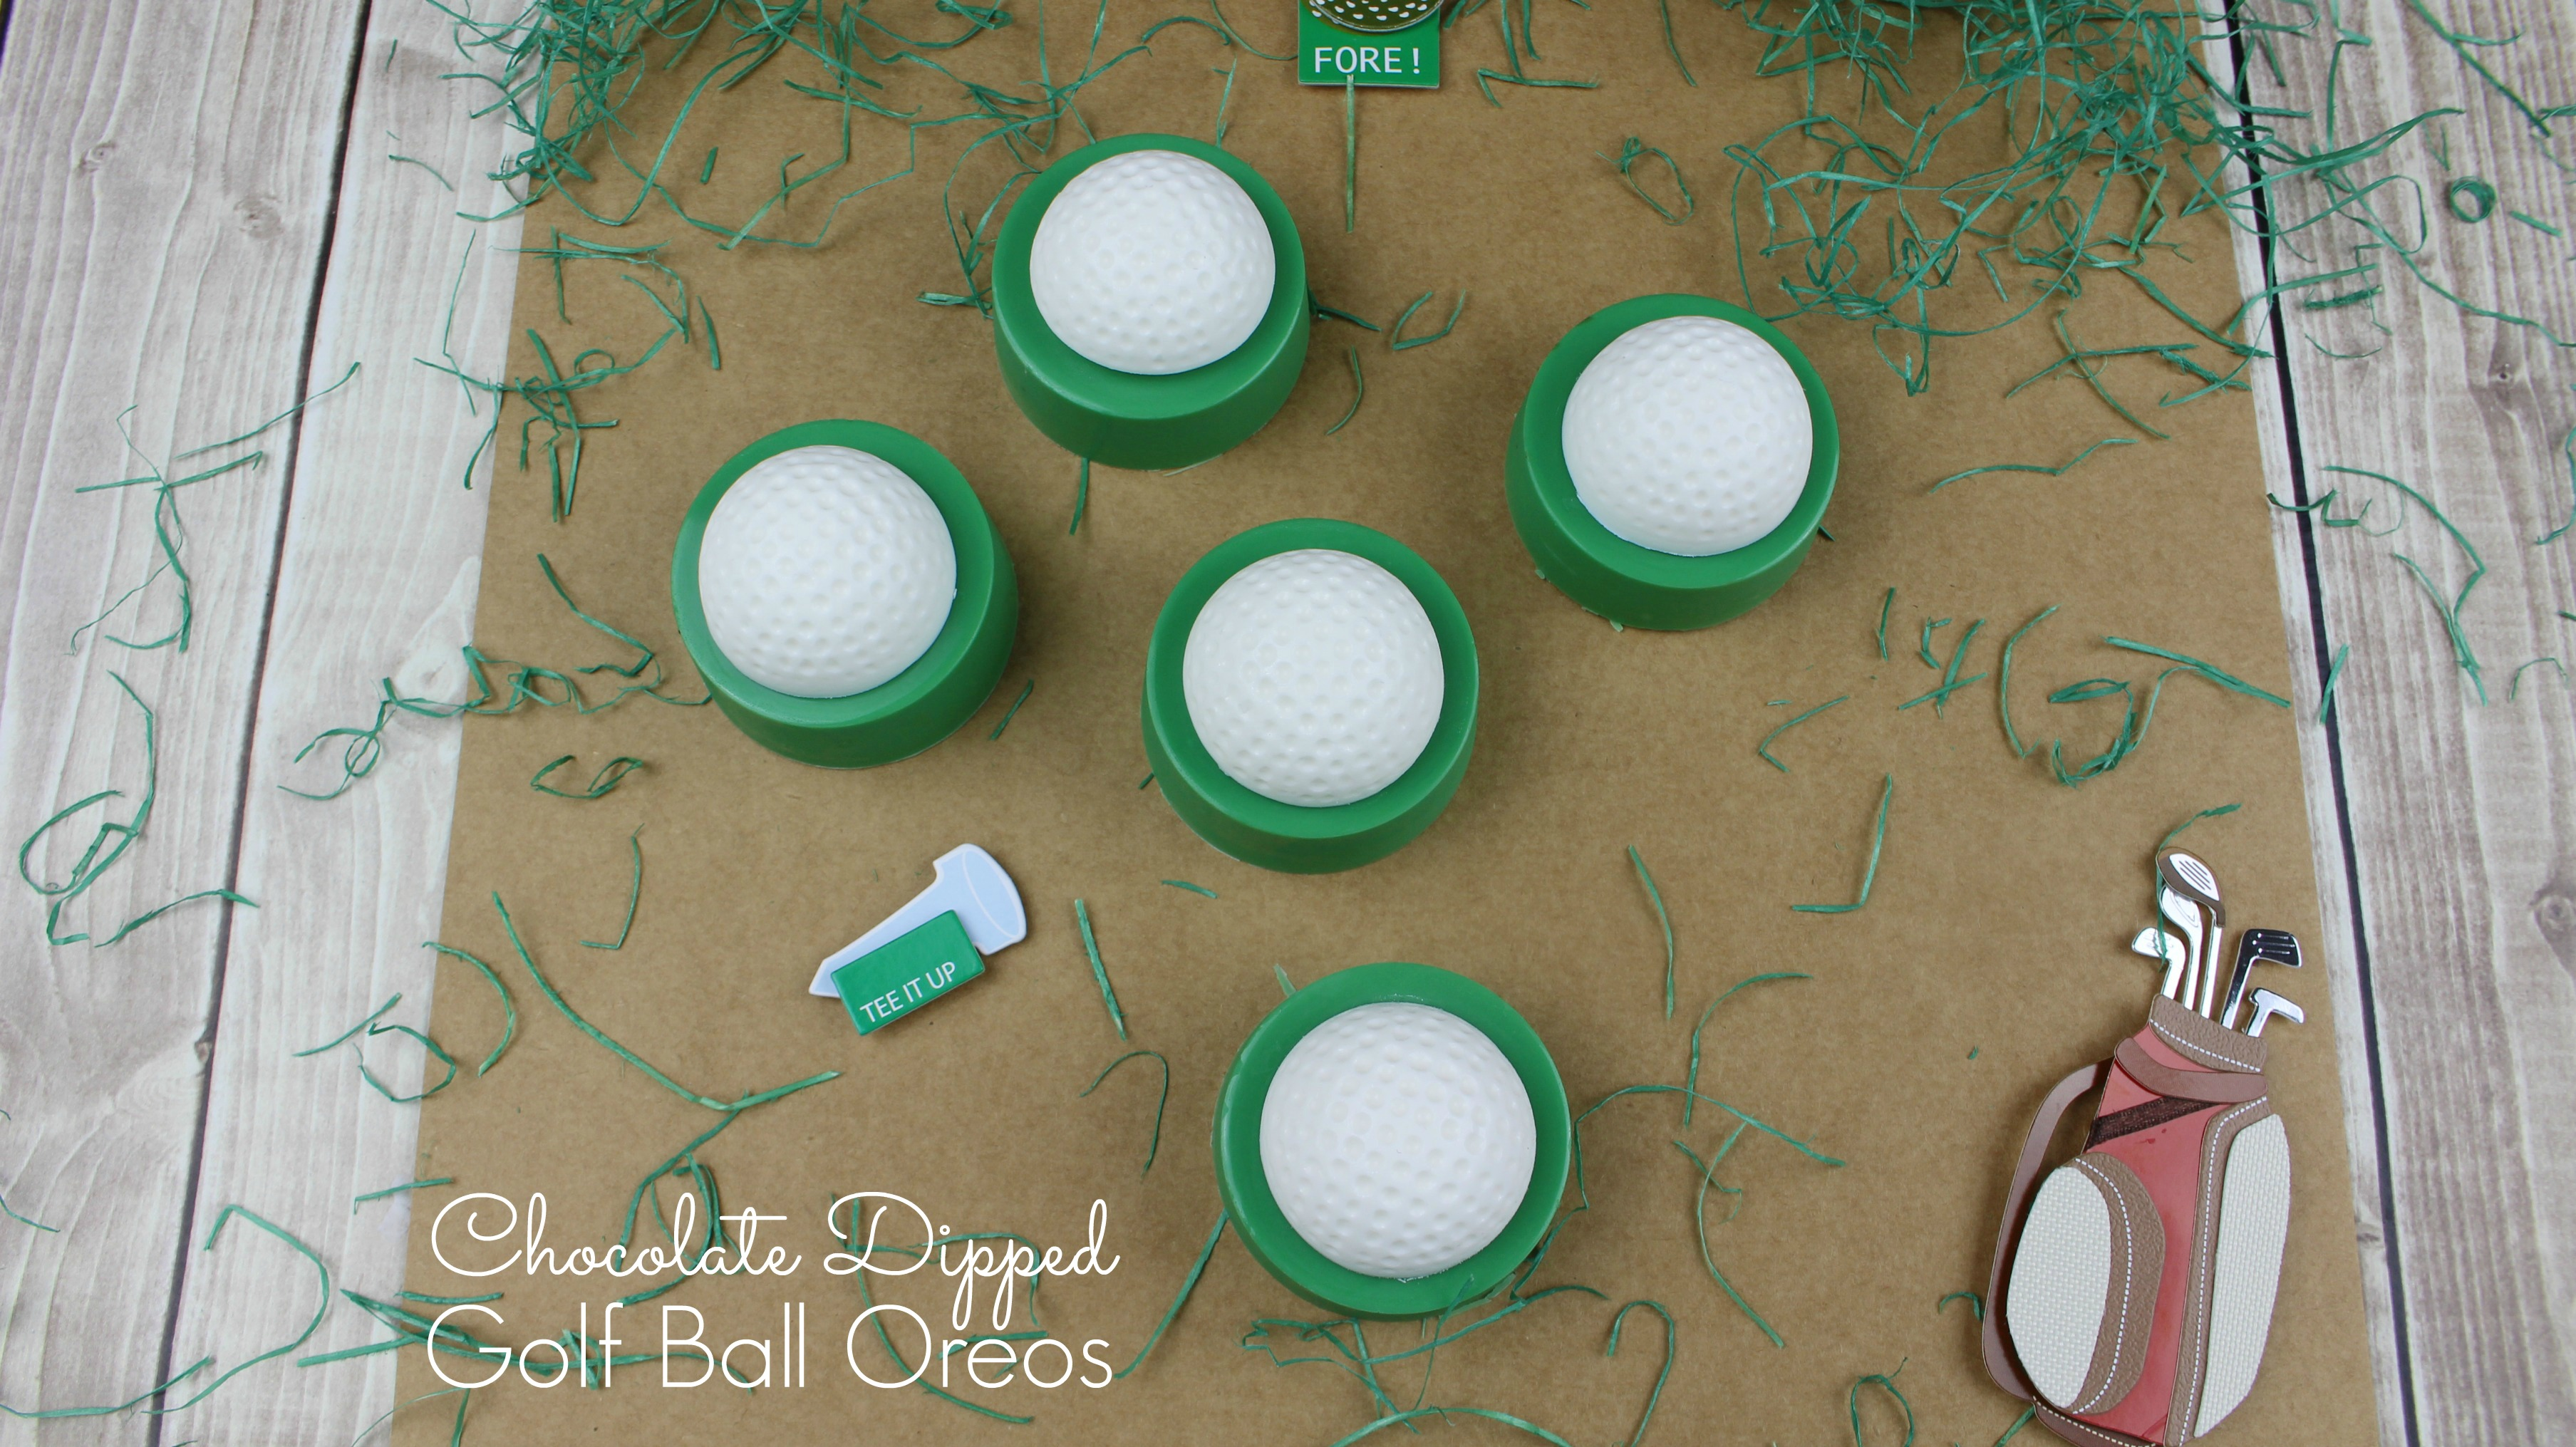 Chocolate Dipped Golf Ball Oreos